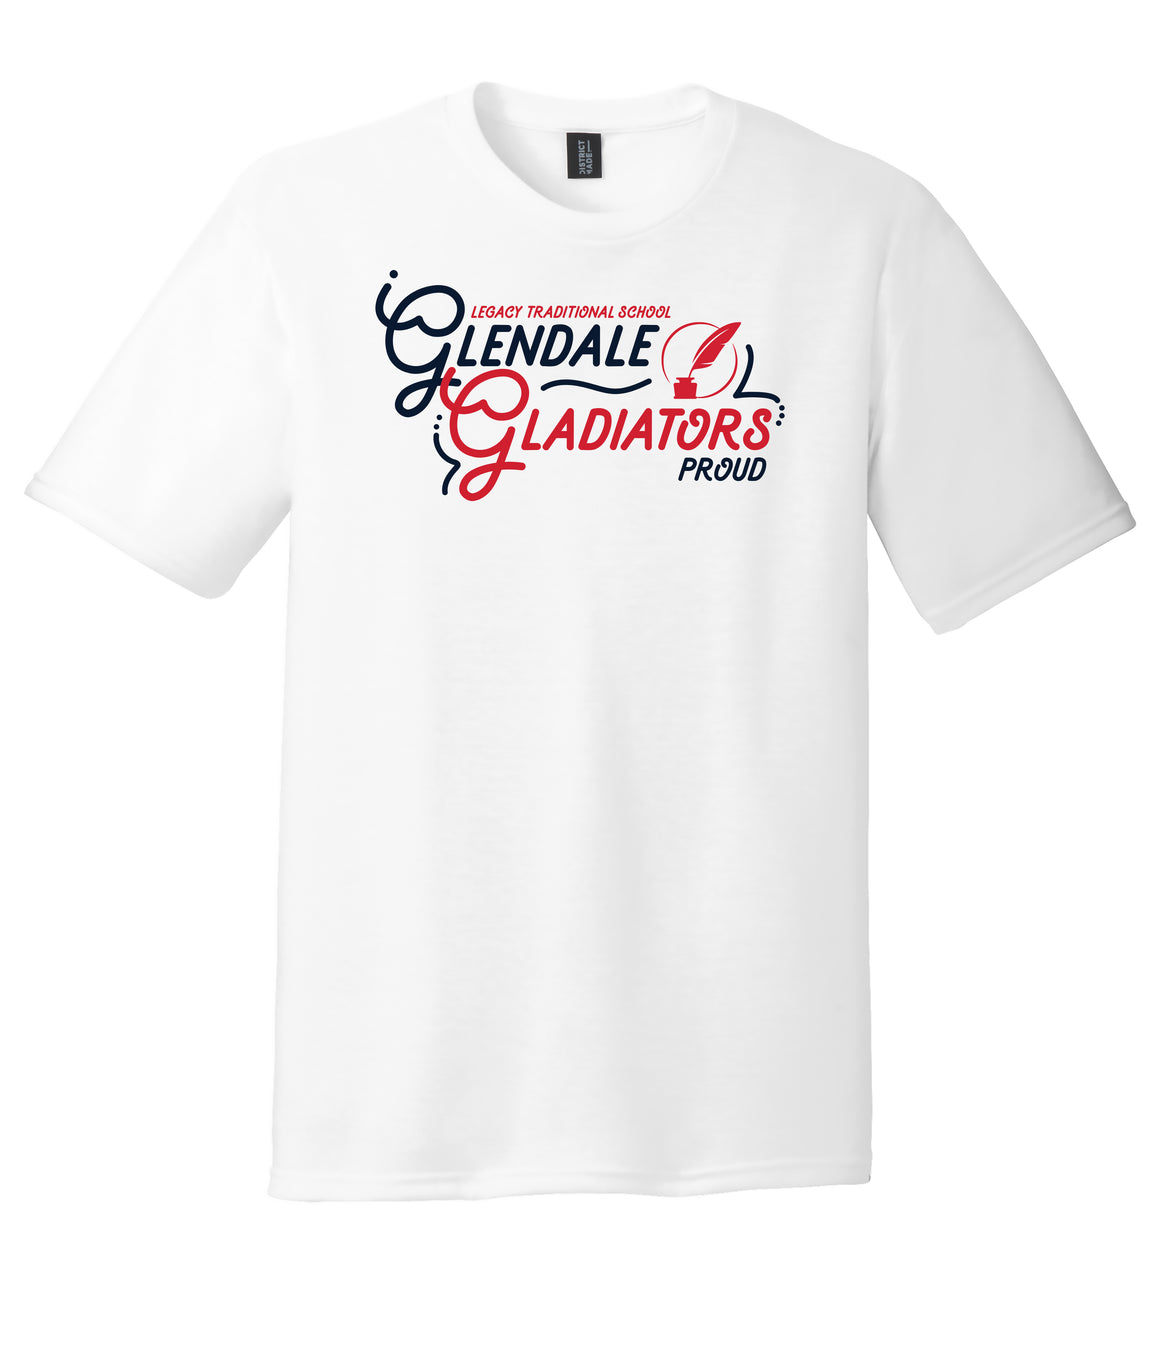 Legacy Traditional School Glendale - White Spirit Day Shirt w/Quill